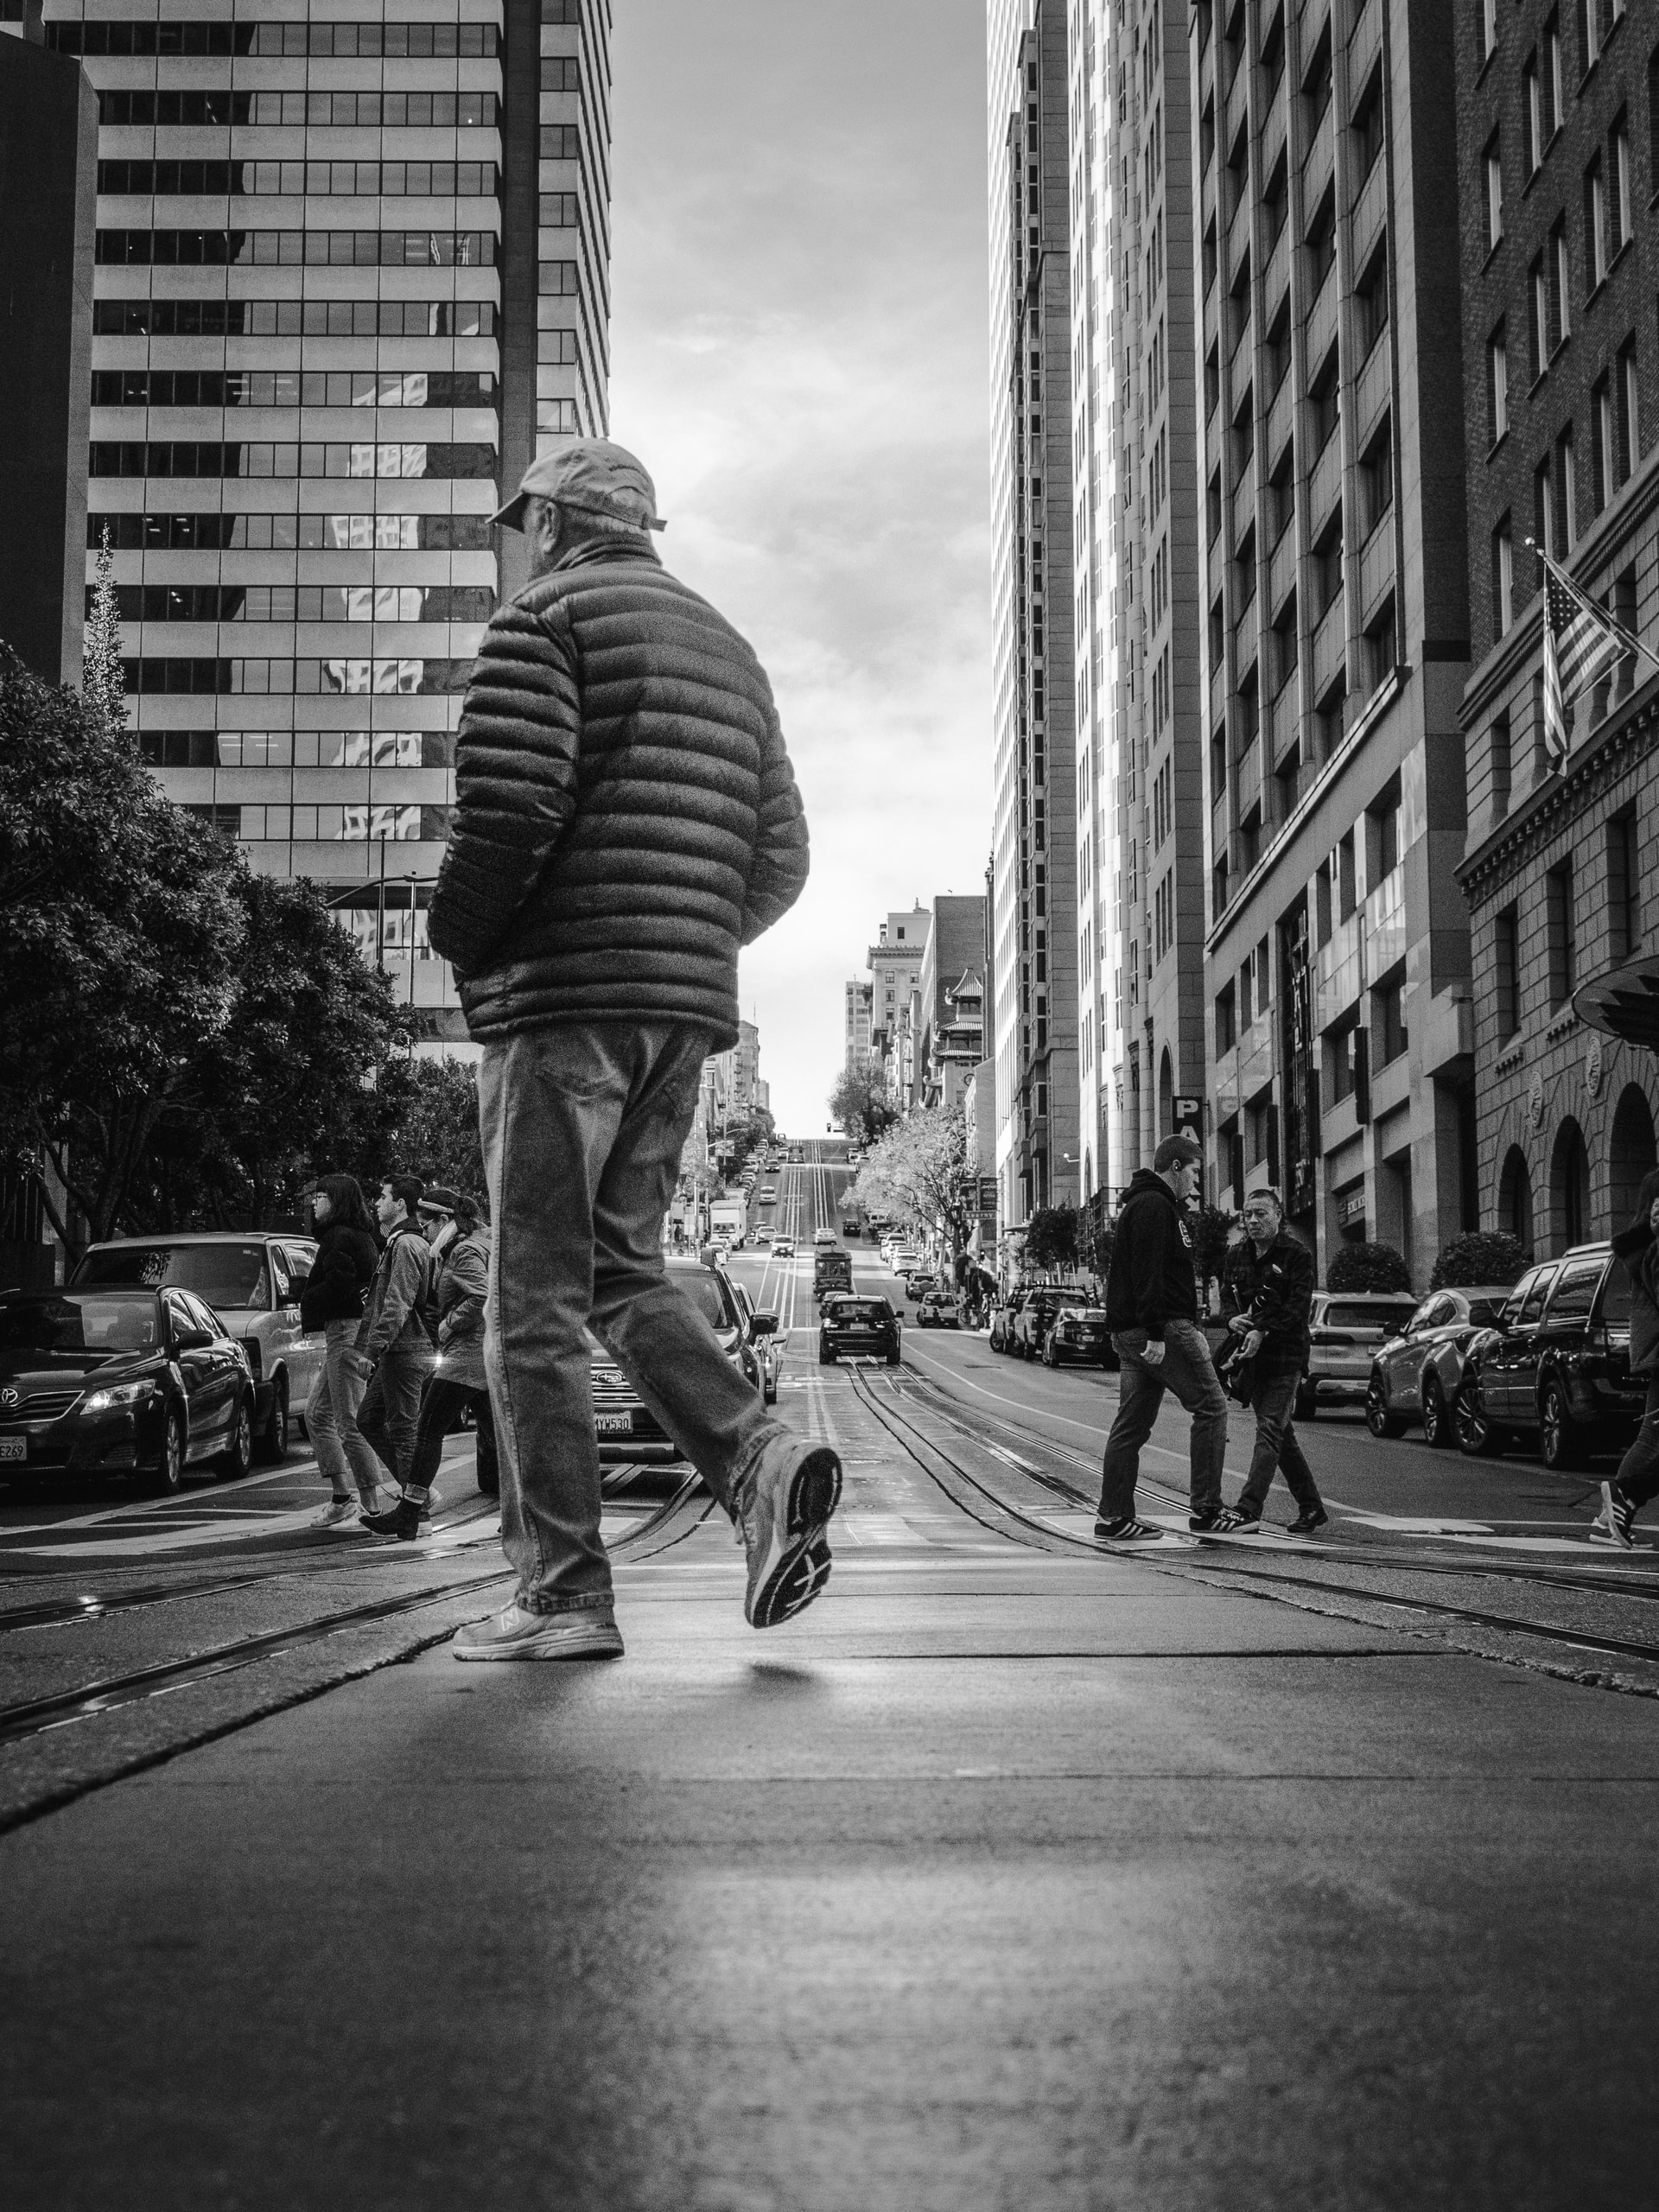 Man walking through city